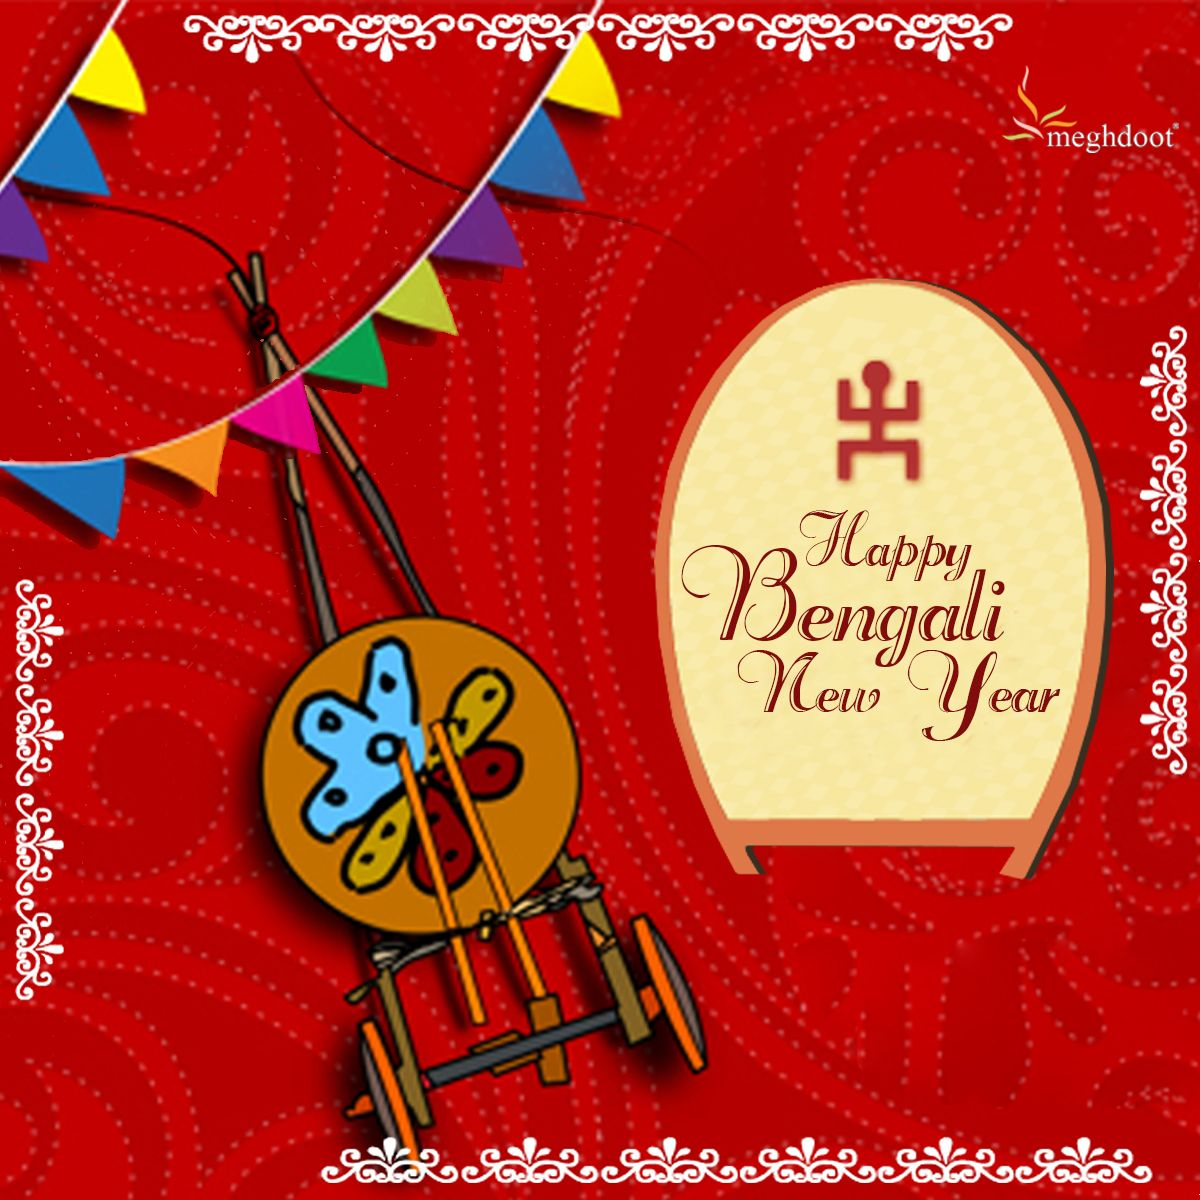 Meghdoot wishes everyone a very happy Poila Baisakh and